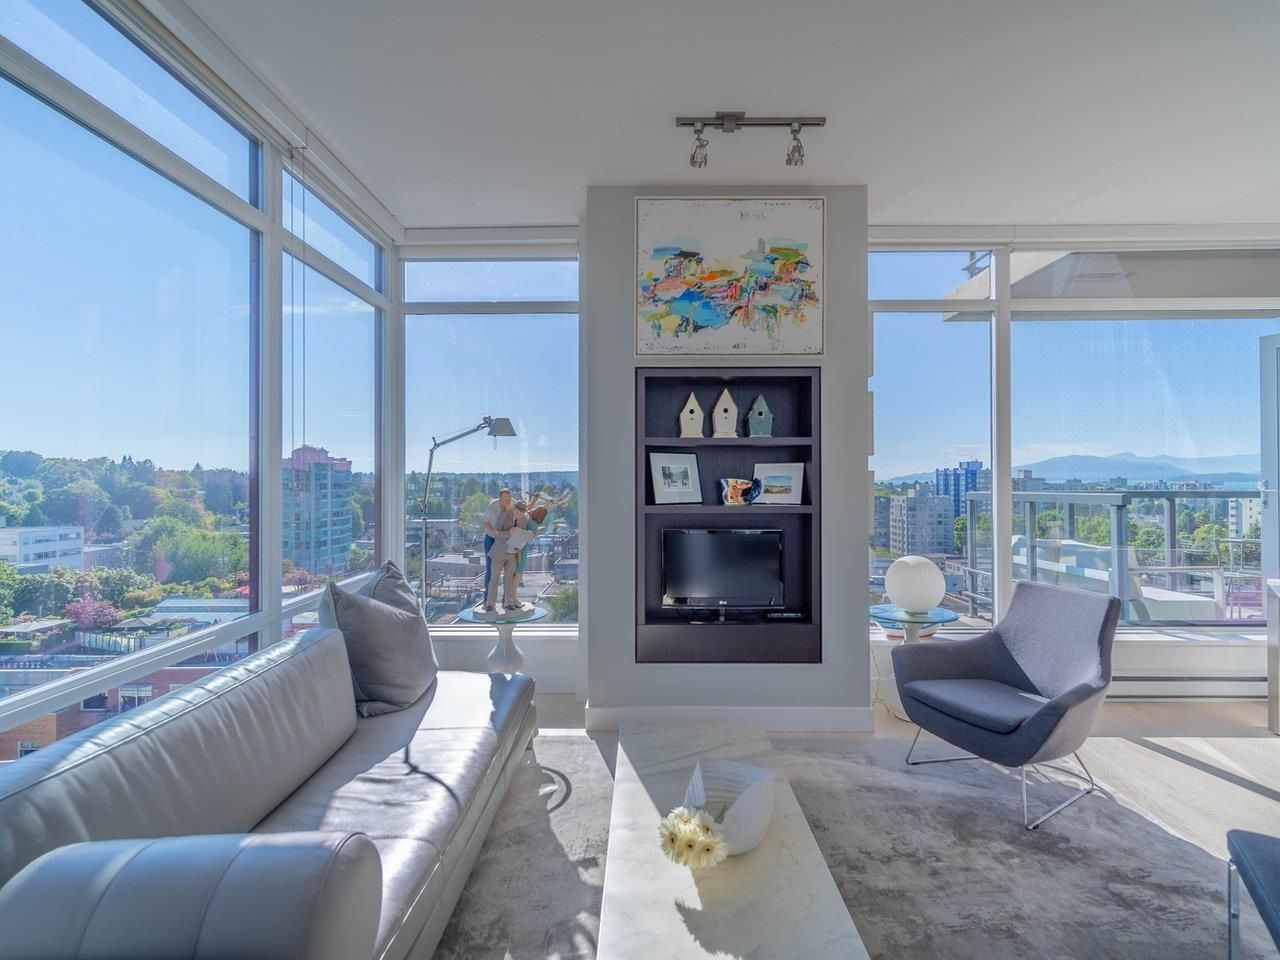 Main Photo: 1101 1468 W 14TH Avenue in Vancouver: Fairview VW Condo for sale (Vancouver West)  : MLS®# R2608942